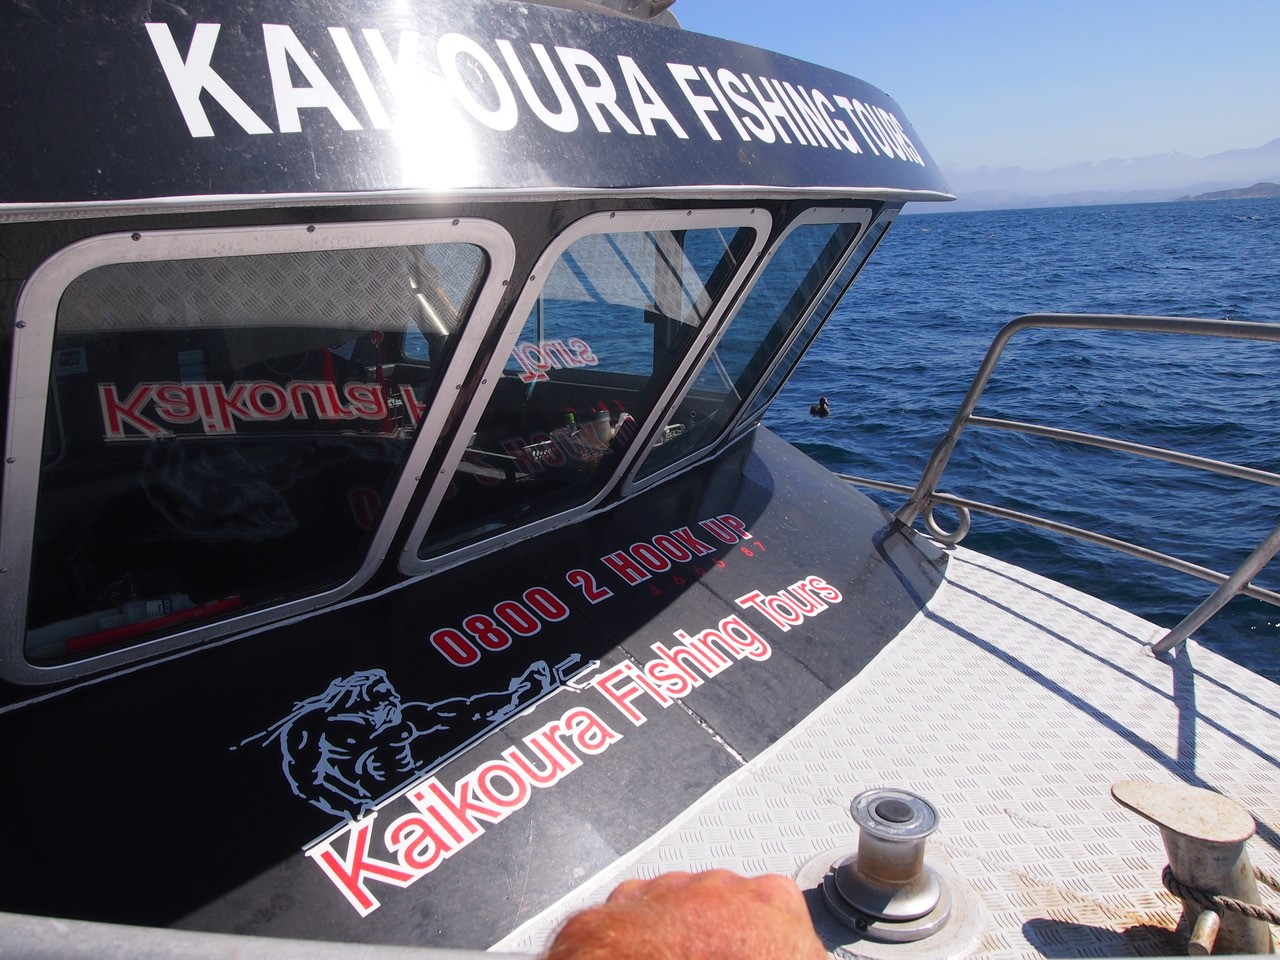 Kaikoura-fishing-vessel-front.jpg